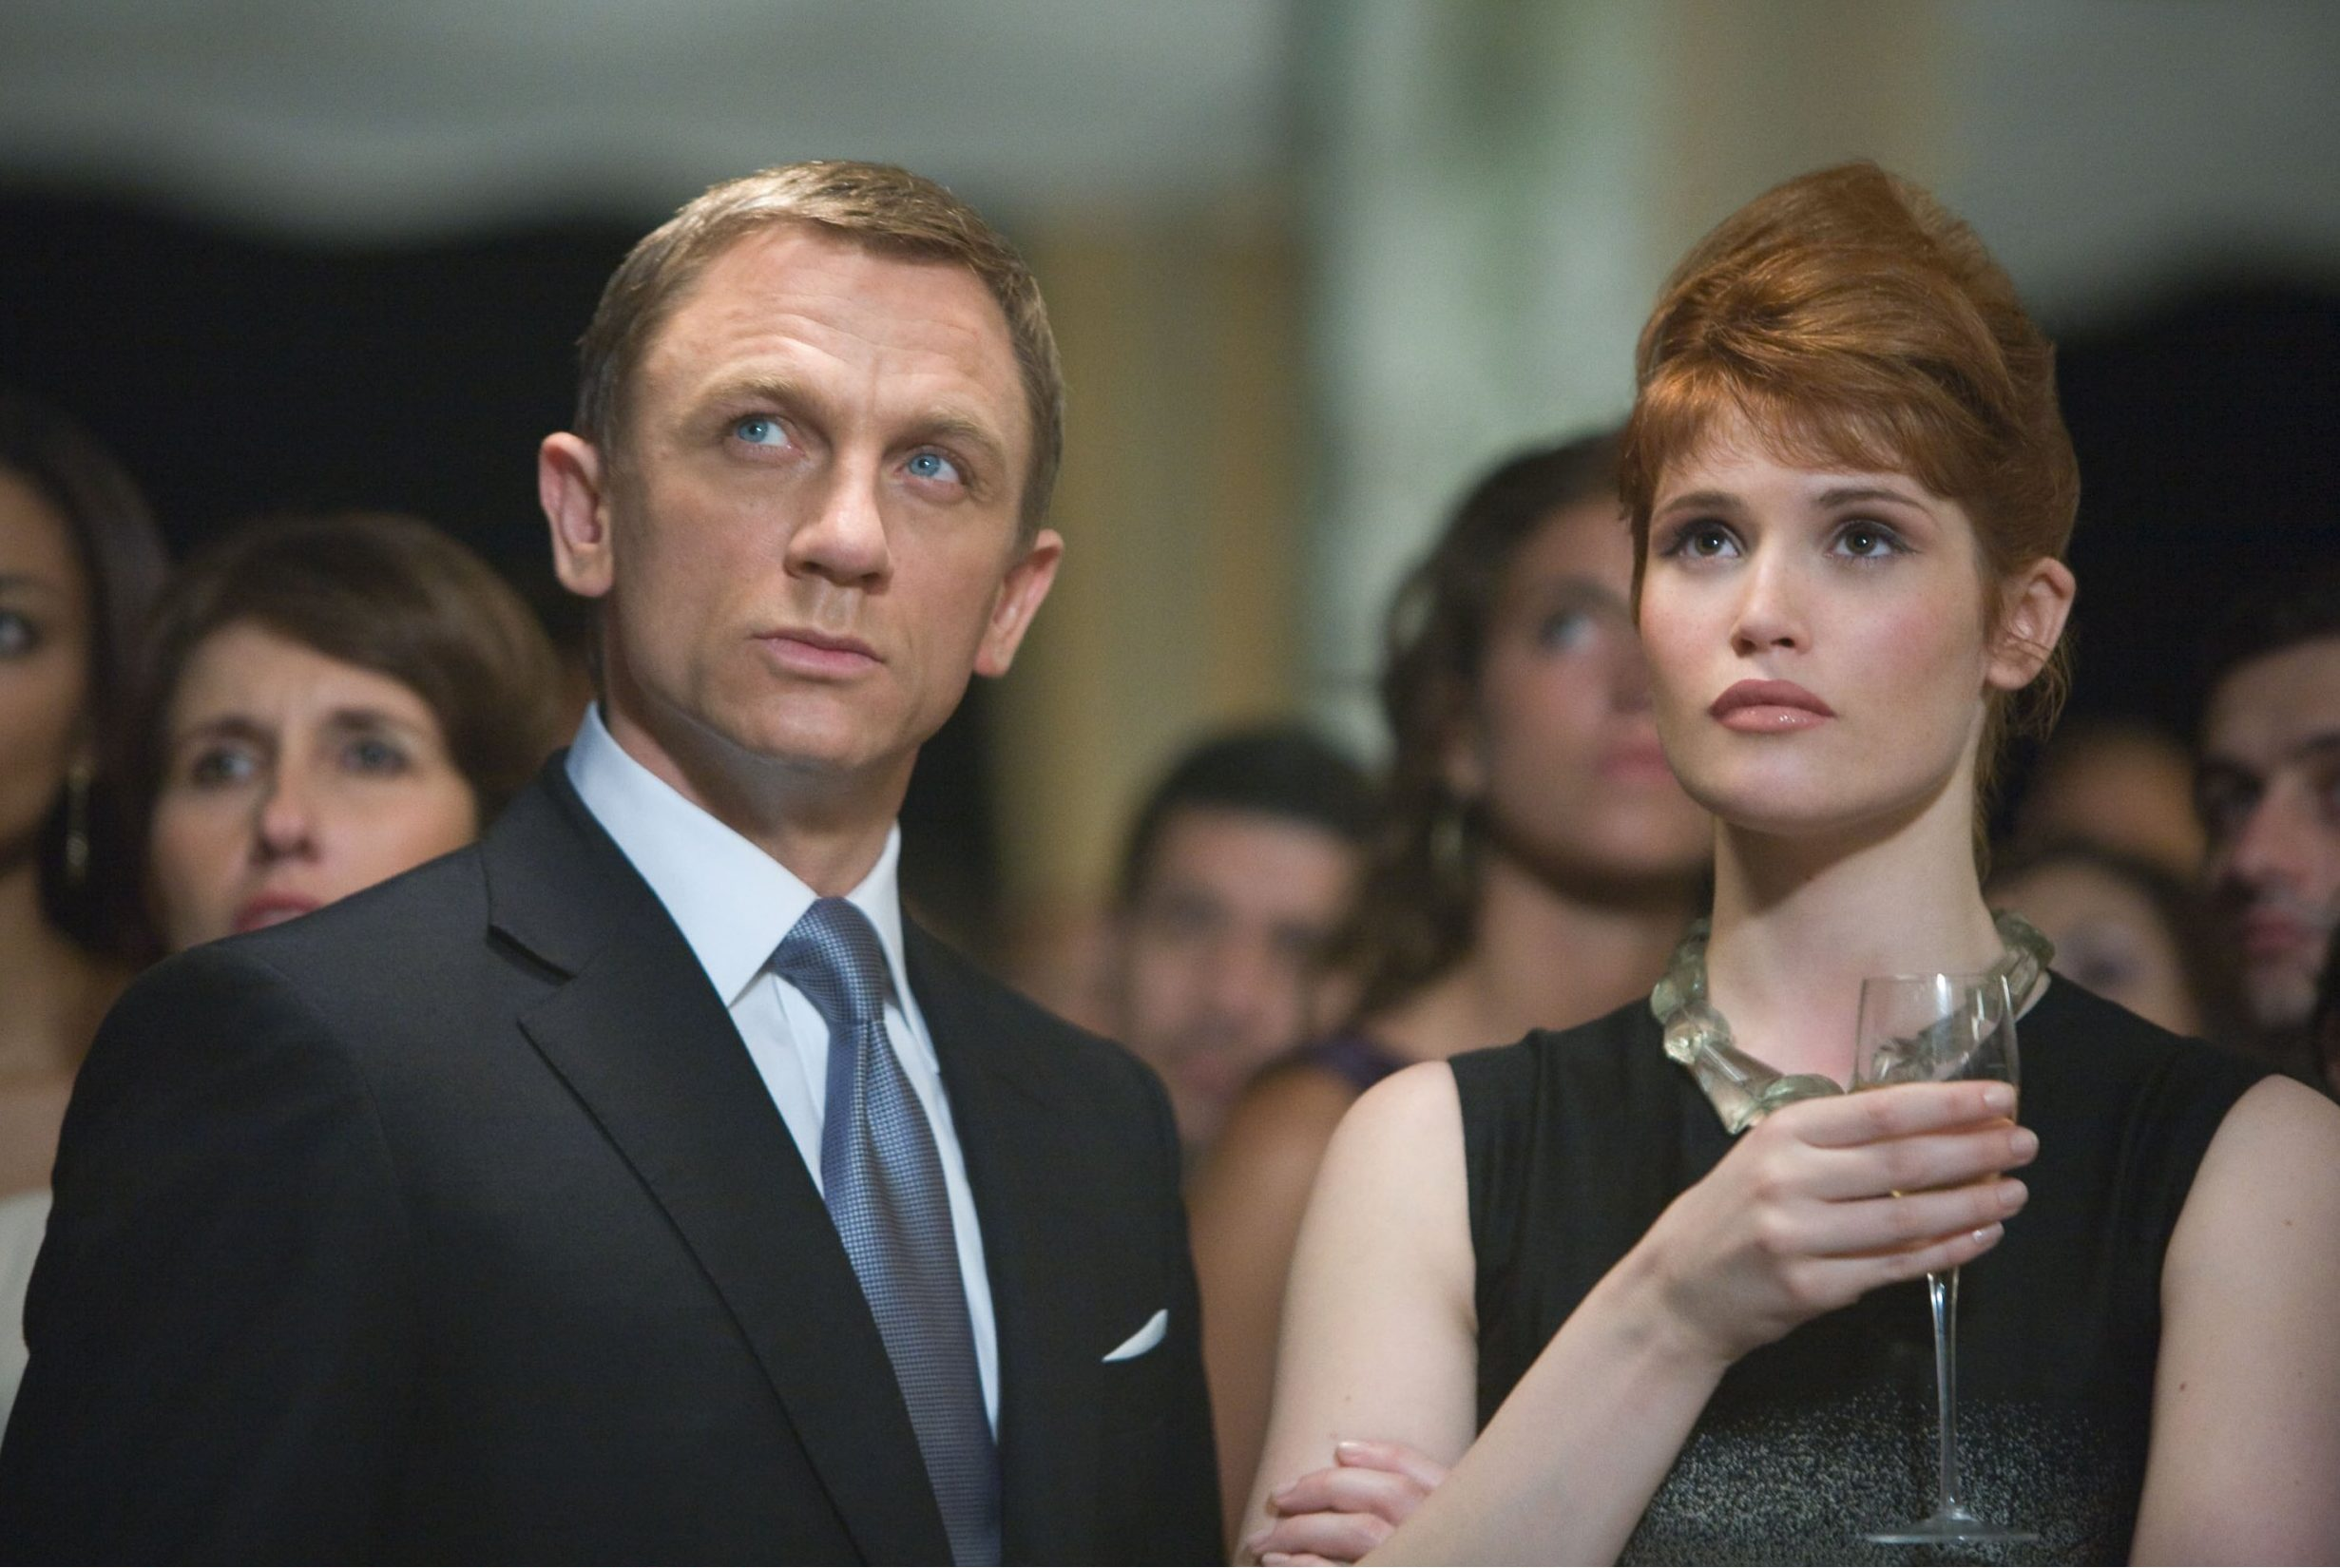 No Merchandising. Editorial Use Only. No Book Cover Usage. Mandatory Credit: Photo by MGM/Columbia/EON/Kobal/REX/Shutterstock (5886228p) Daniel Craig, Gemma Arterton Quantum Of Solace - 2008 Director: Marc Forster MGM/Columbia/EON UK Scene Still James Bond Action/Adventure